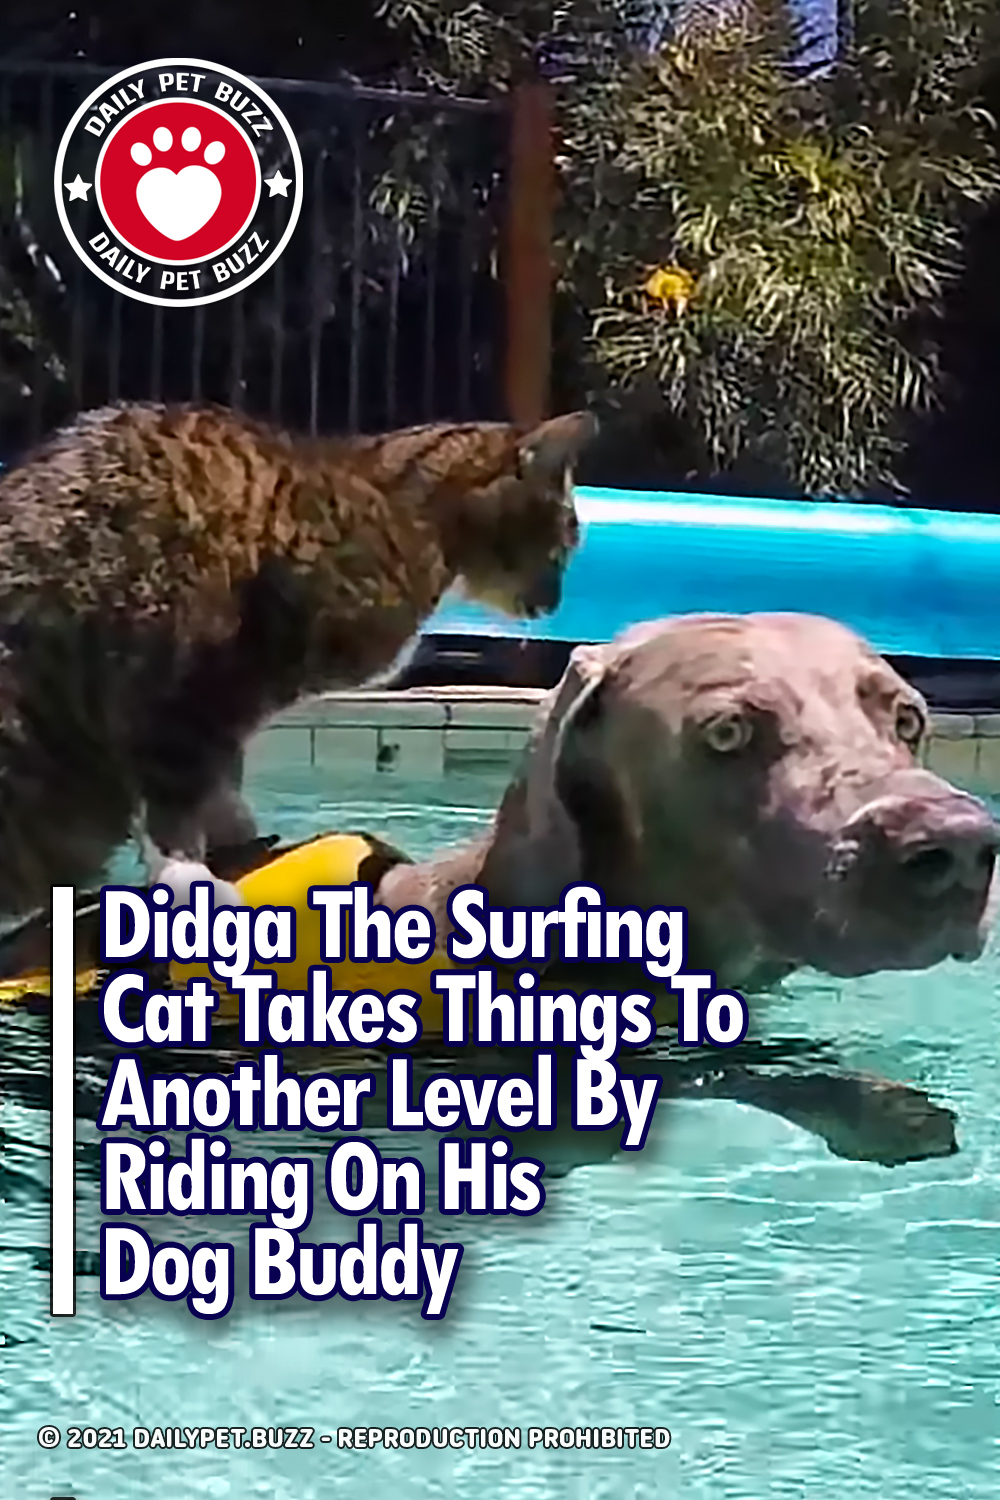 Didga The Surfing Cat Takes Things To Another Level By Riding On His Dog Buddy